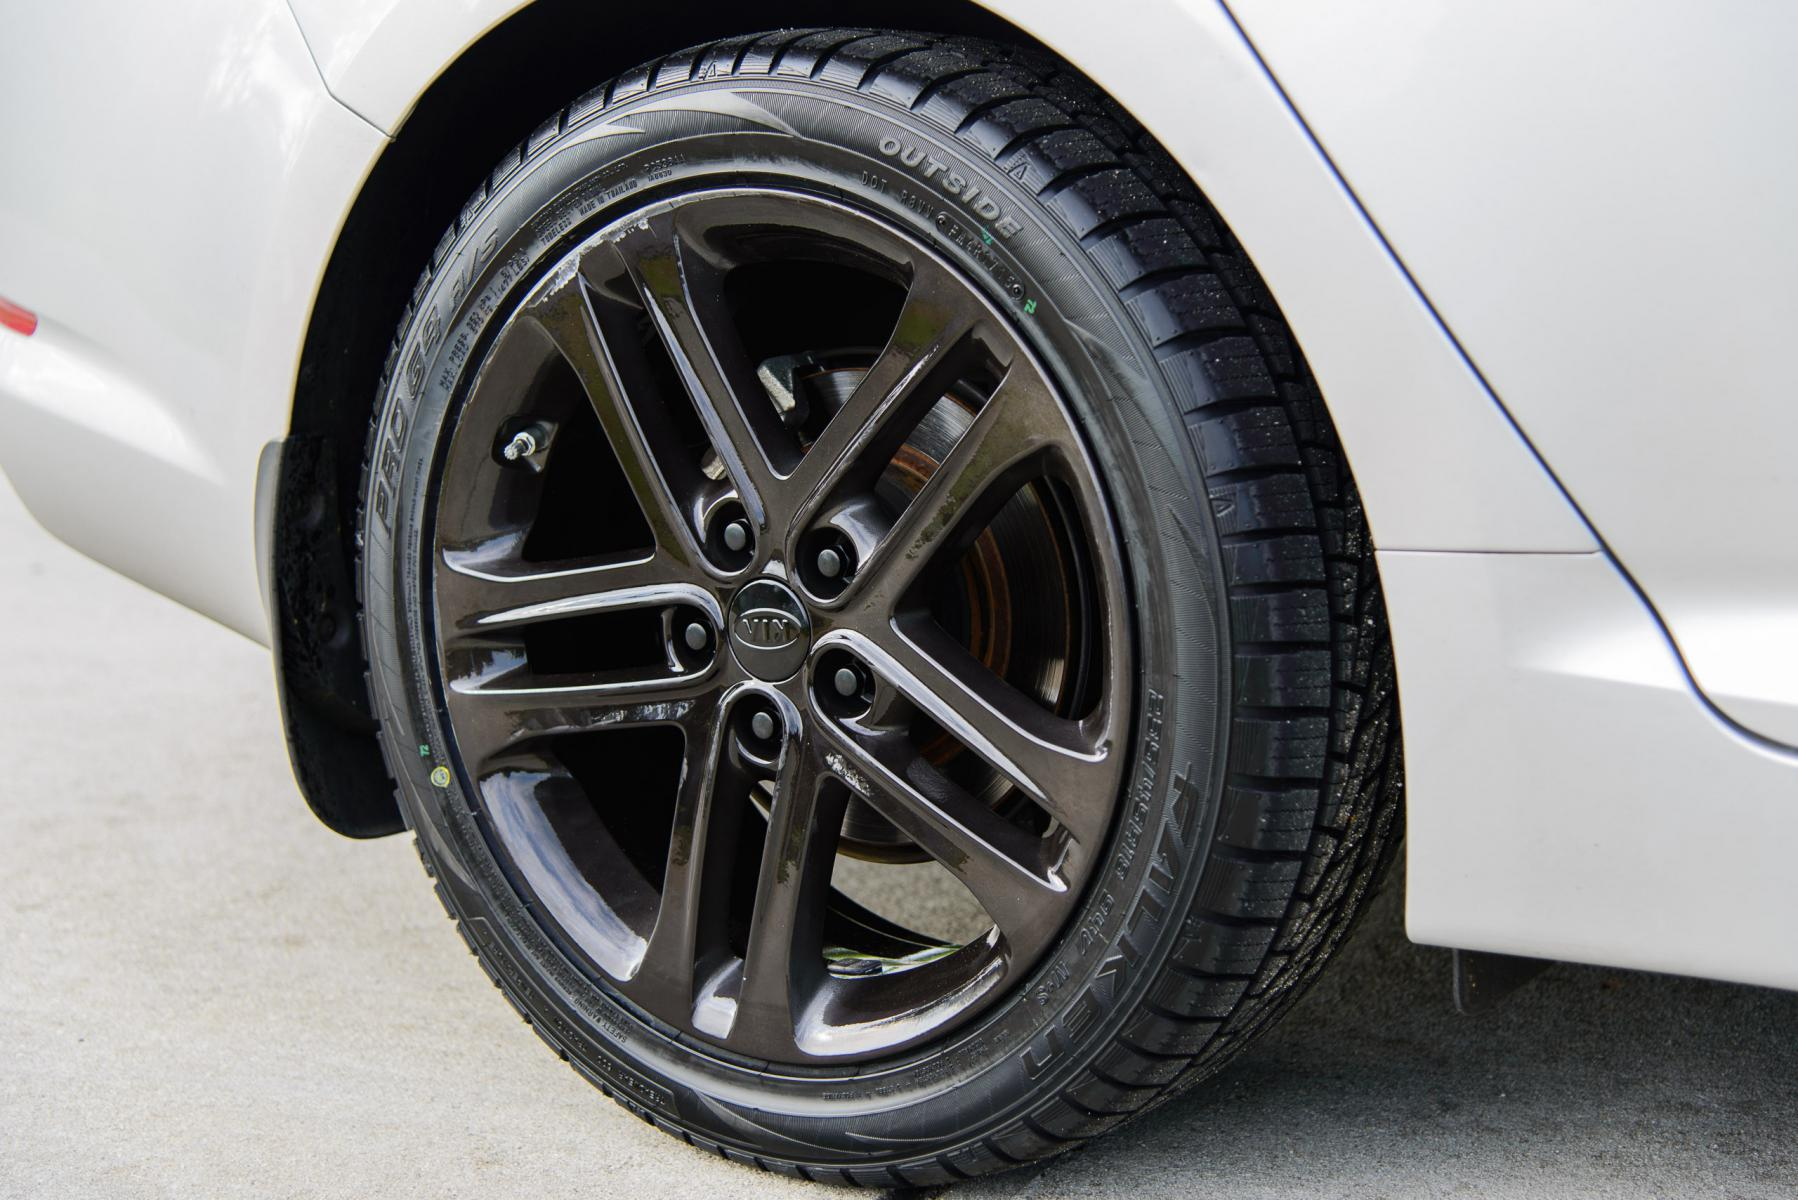 Kia Optima 2013 Price >> [EX] : 2013 EX - SXL wheels powder coated with silver/candy black for Black Chrome